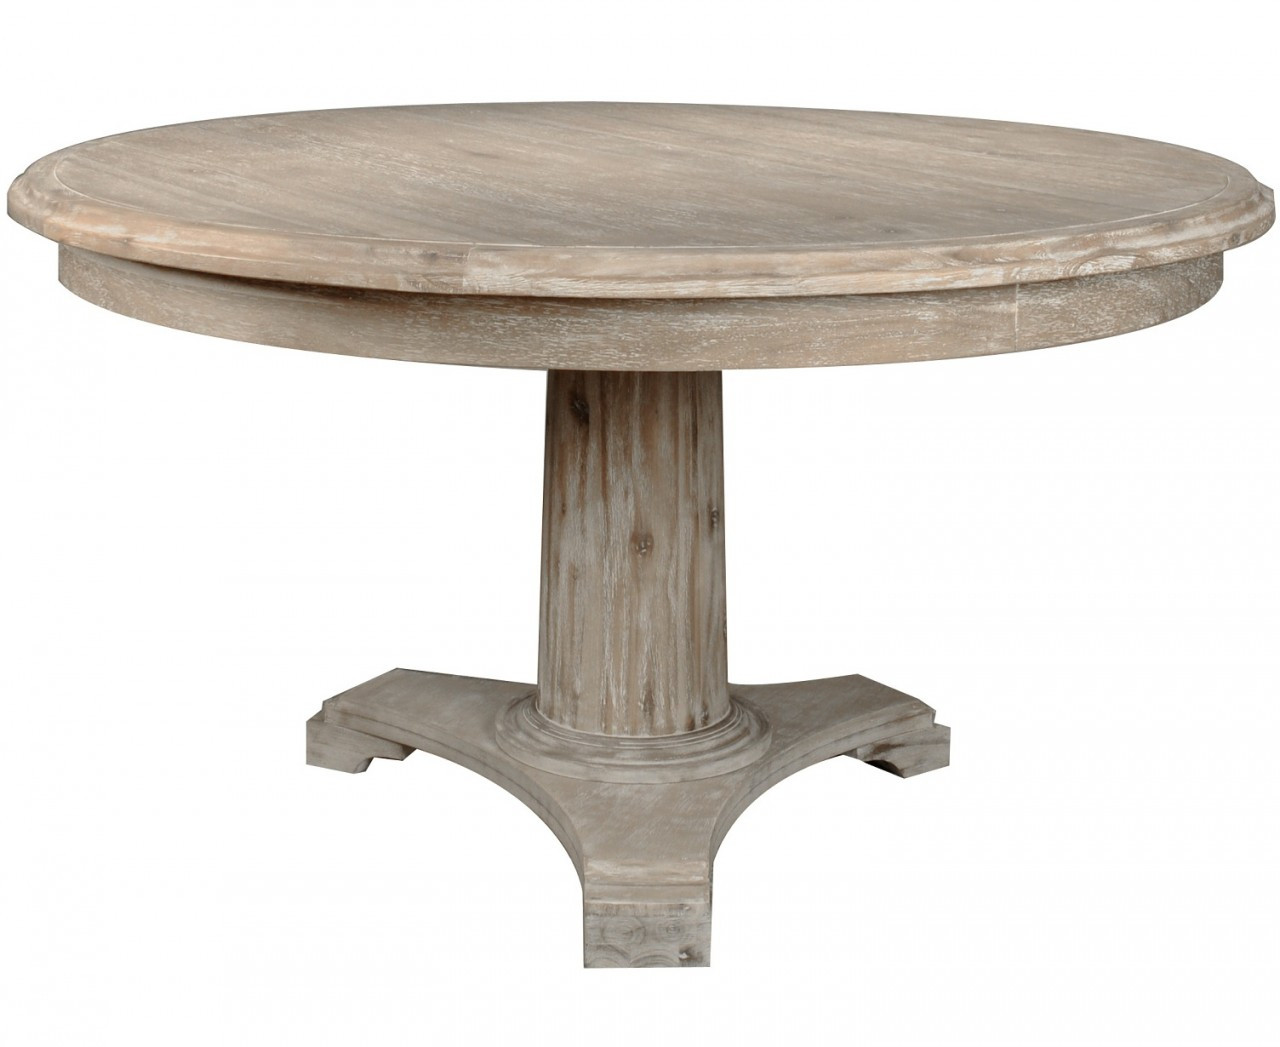 Belmont round dining table 54 round column pedestal for Dining room round table